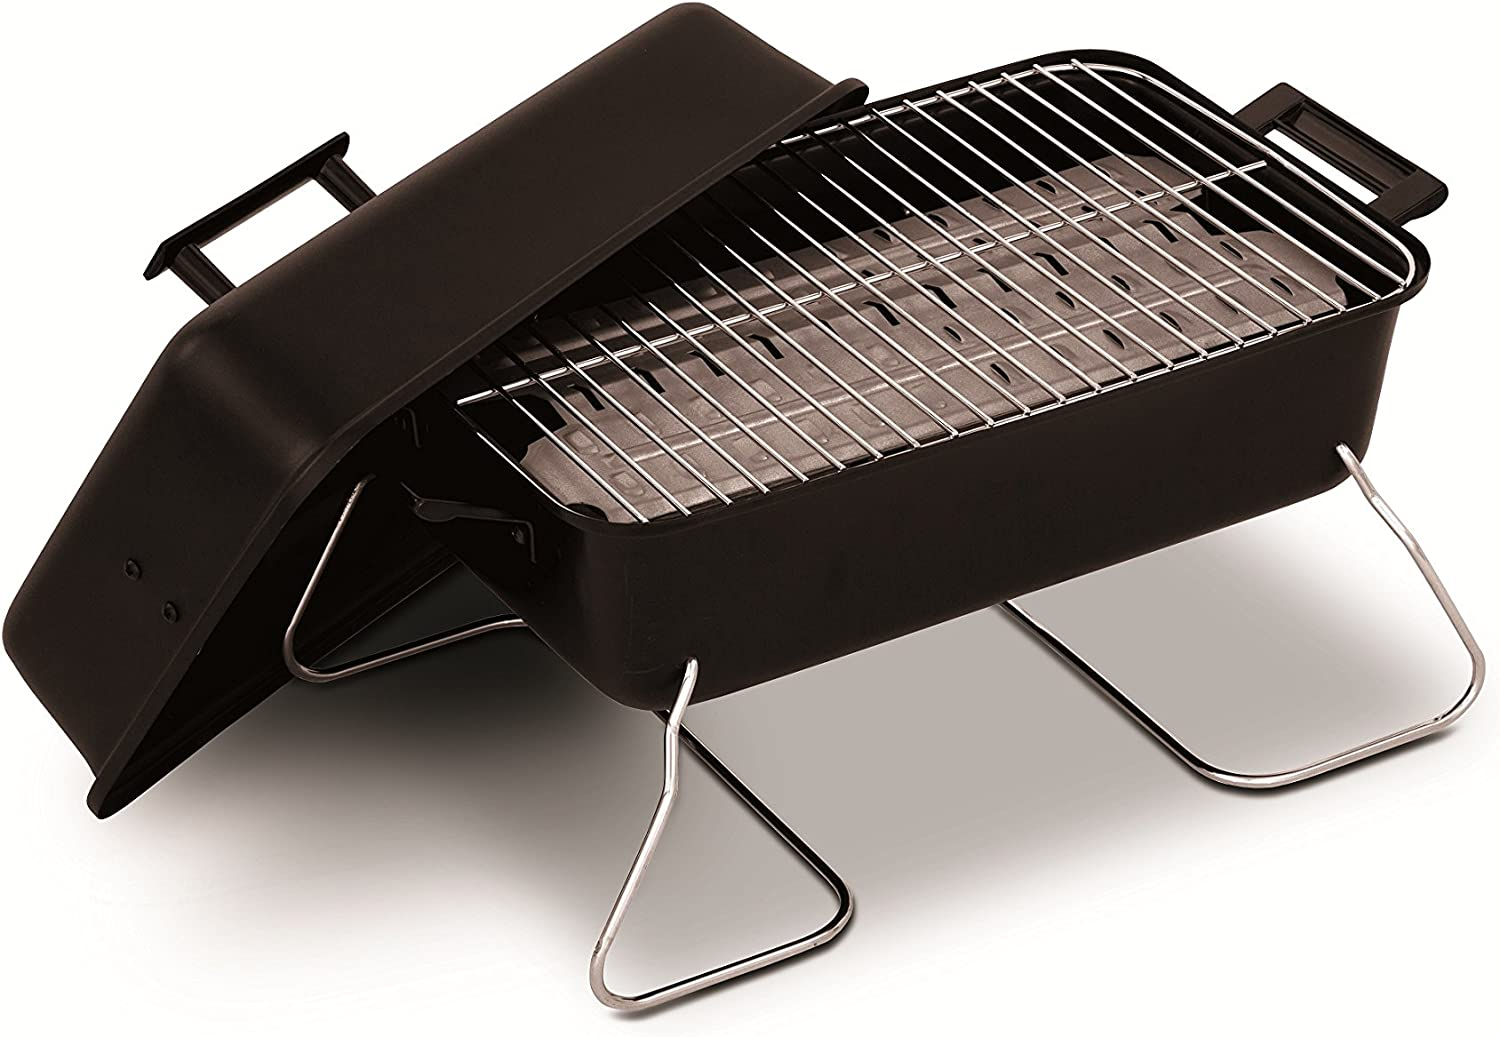 Char-Broil Portable Charcoal Grill